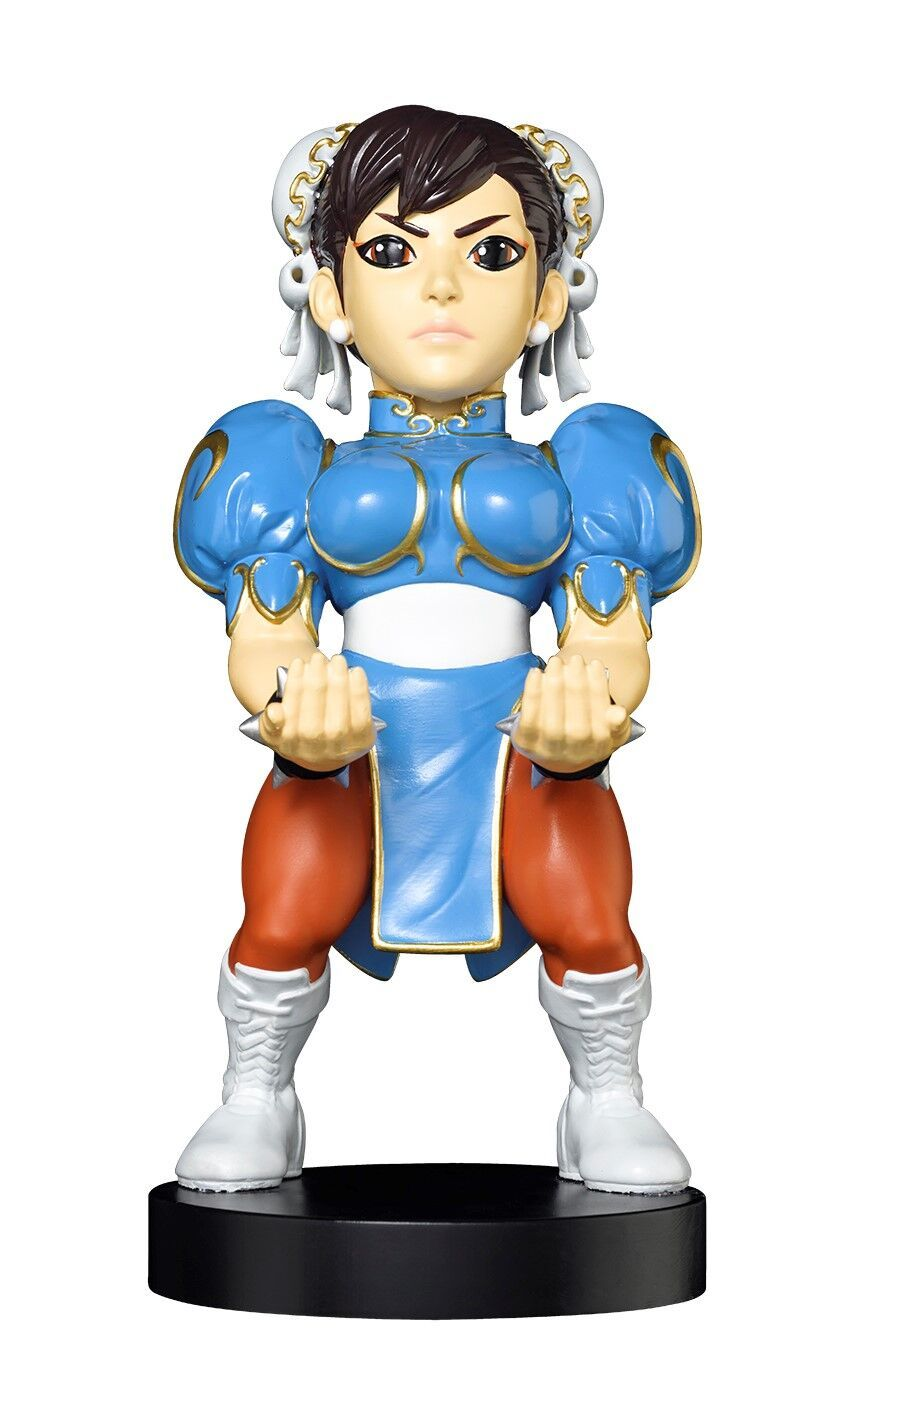 Cable Guy Controller Holder - Chun Li - PS4